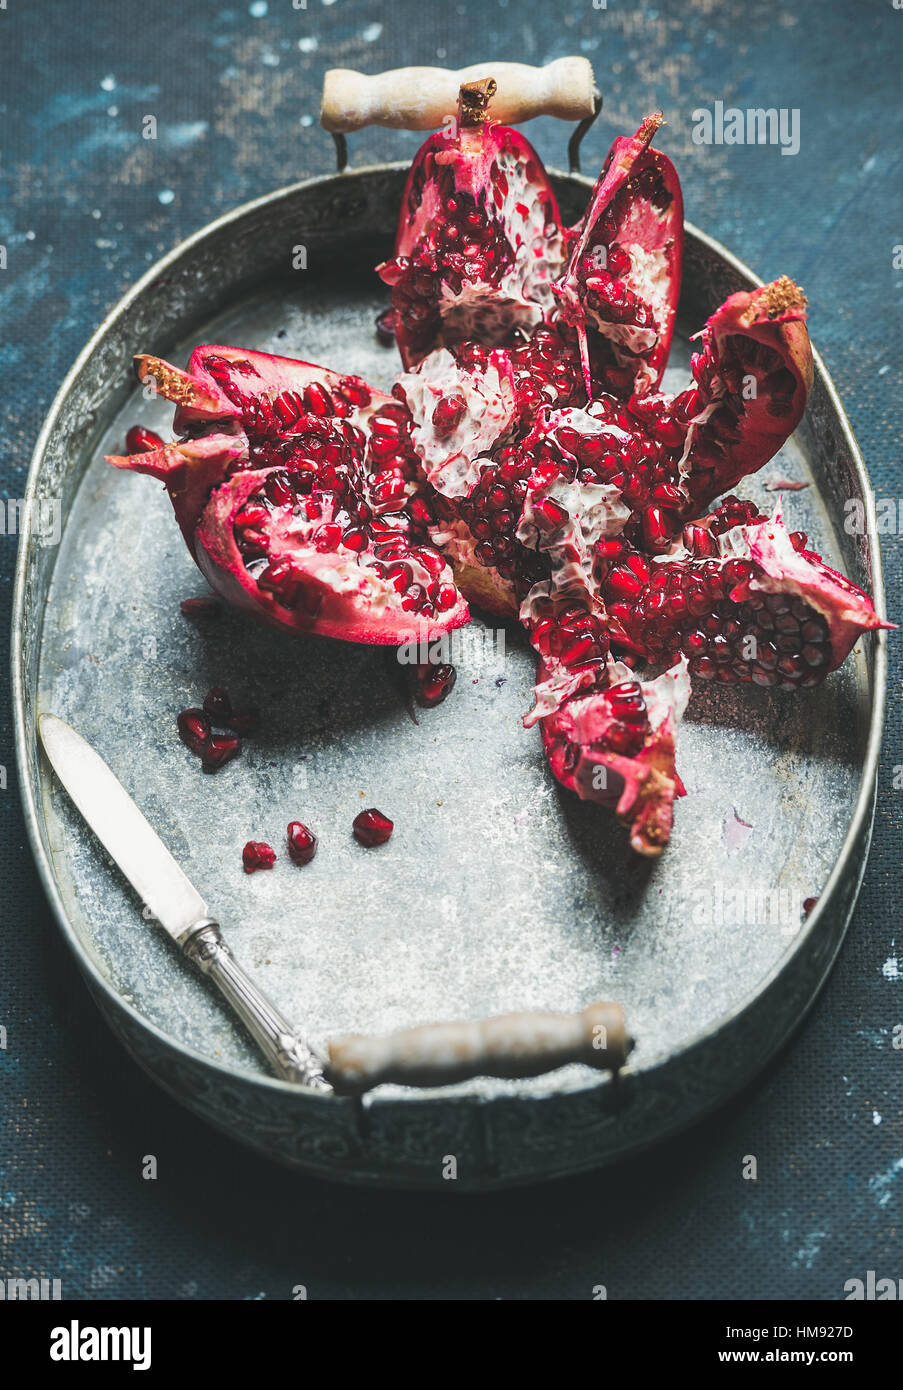 Fresh ripe pomegranate broken in pieces in metal tray - Stock Image